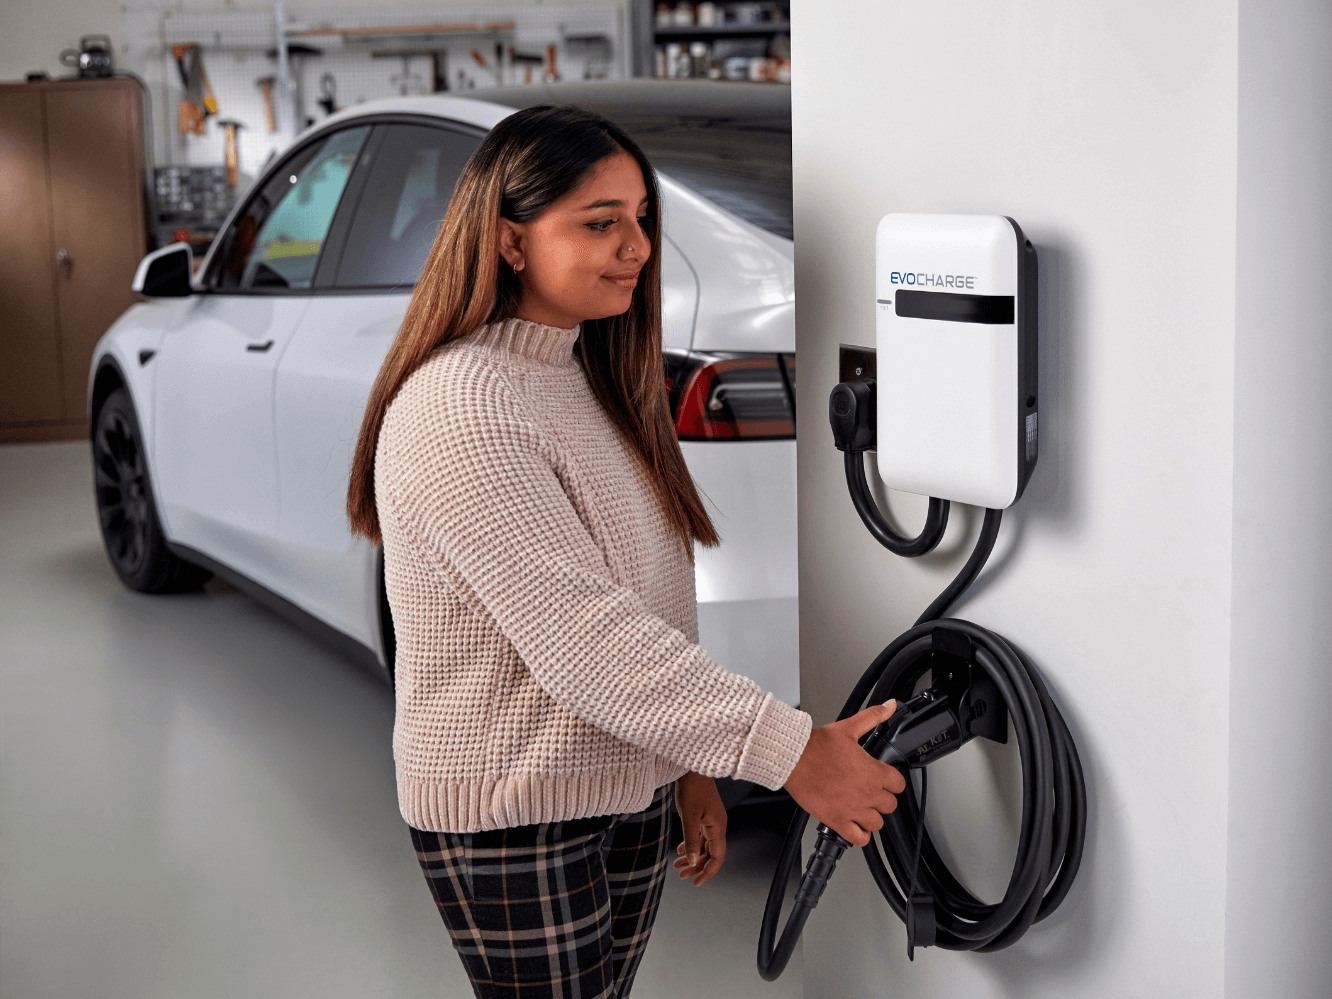 A woman in a garage grabbing charging handle of EvoCharge charger.